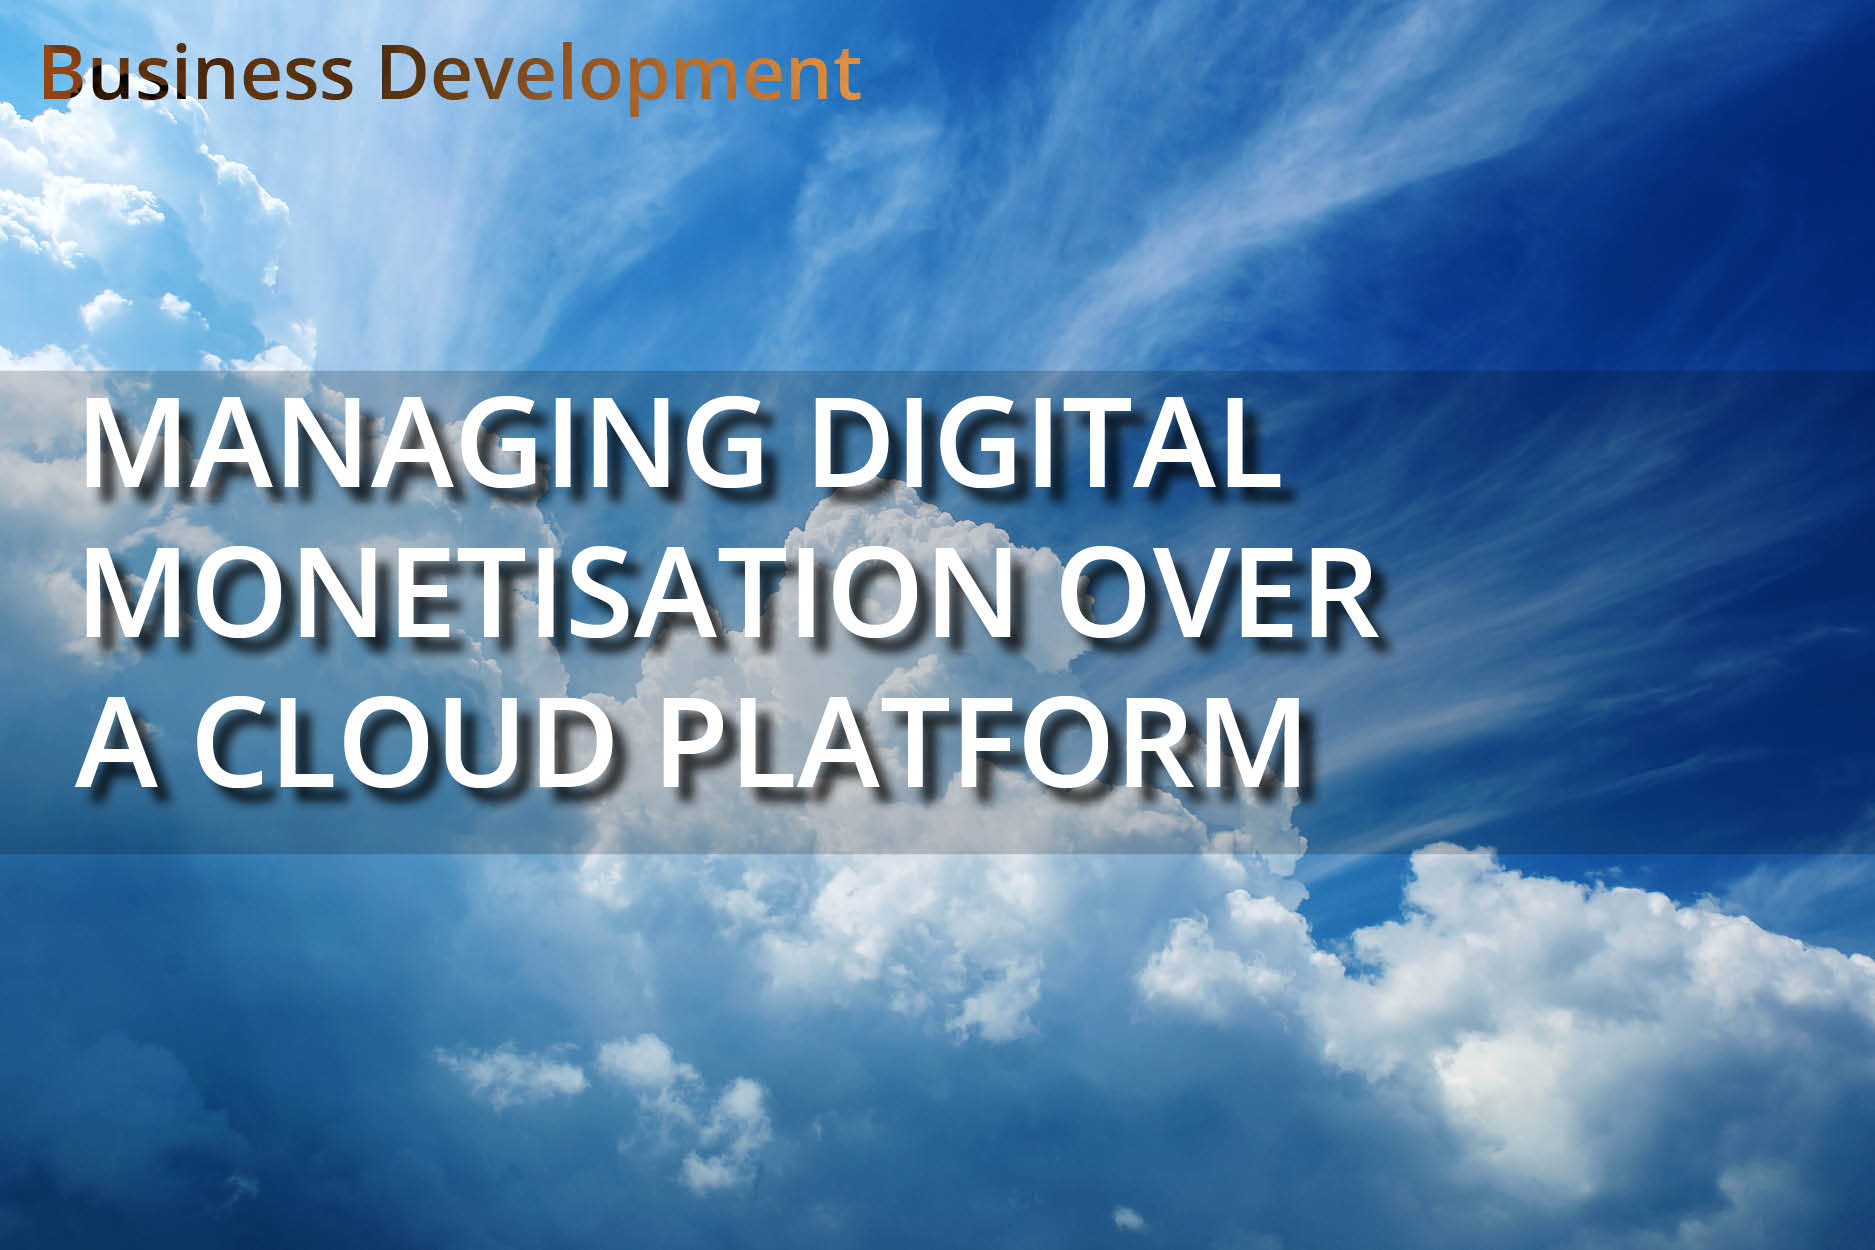 Managing digital monetisation over a cloud platform